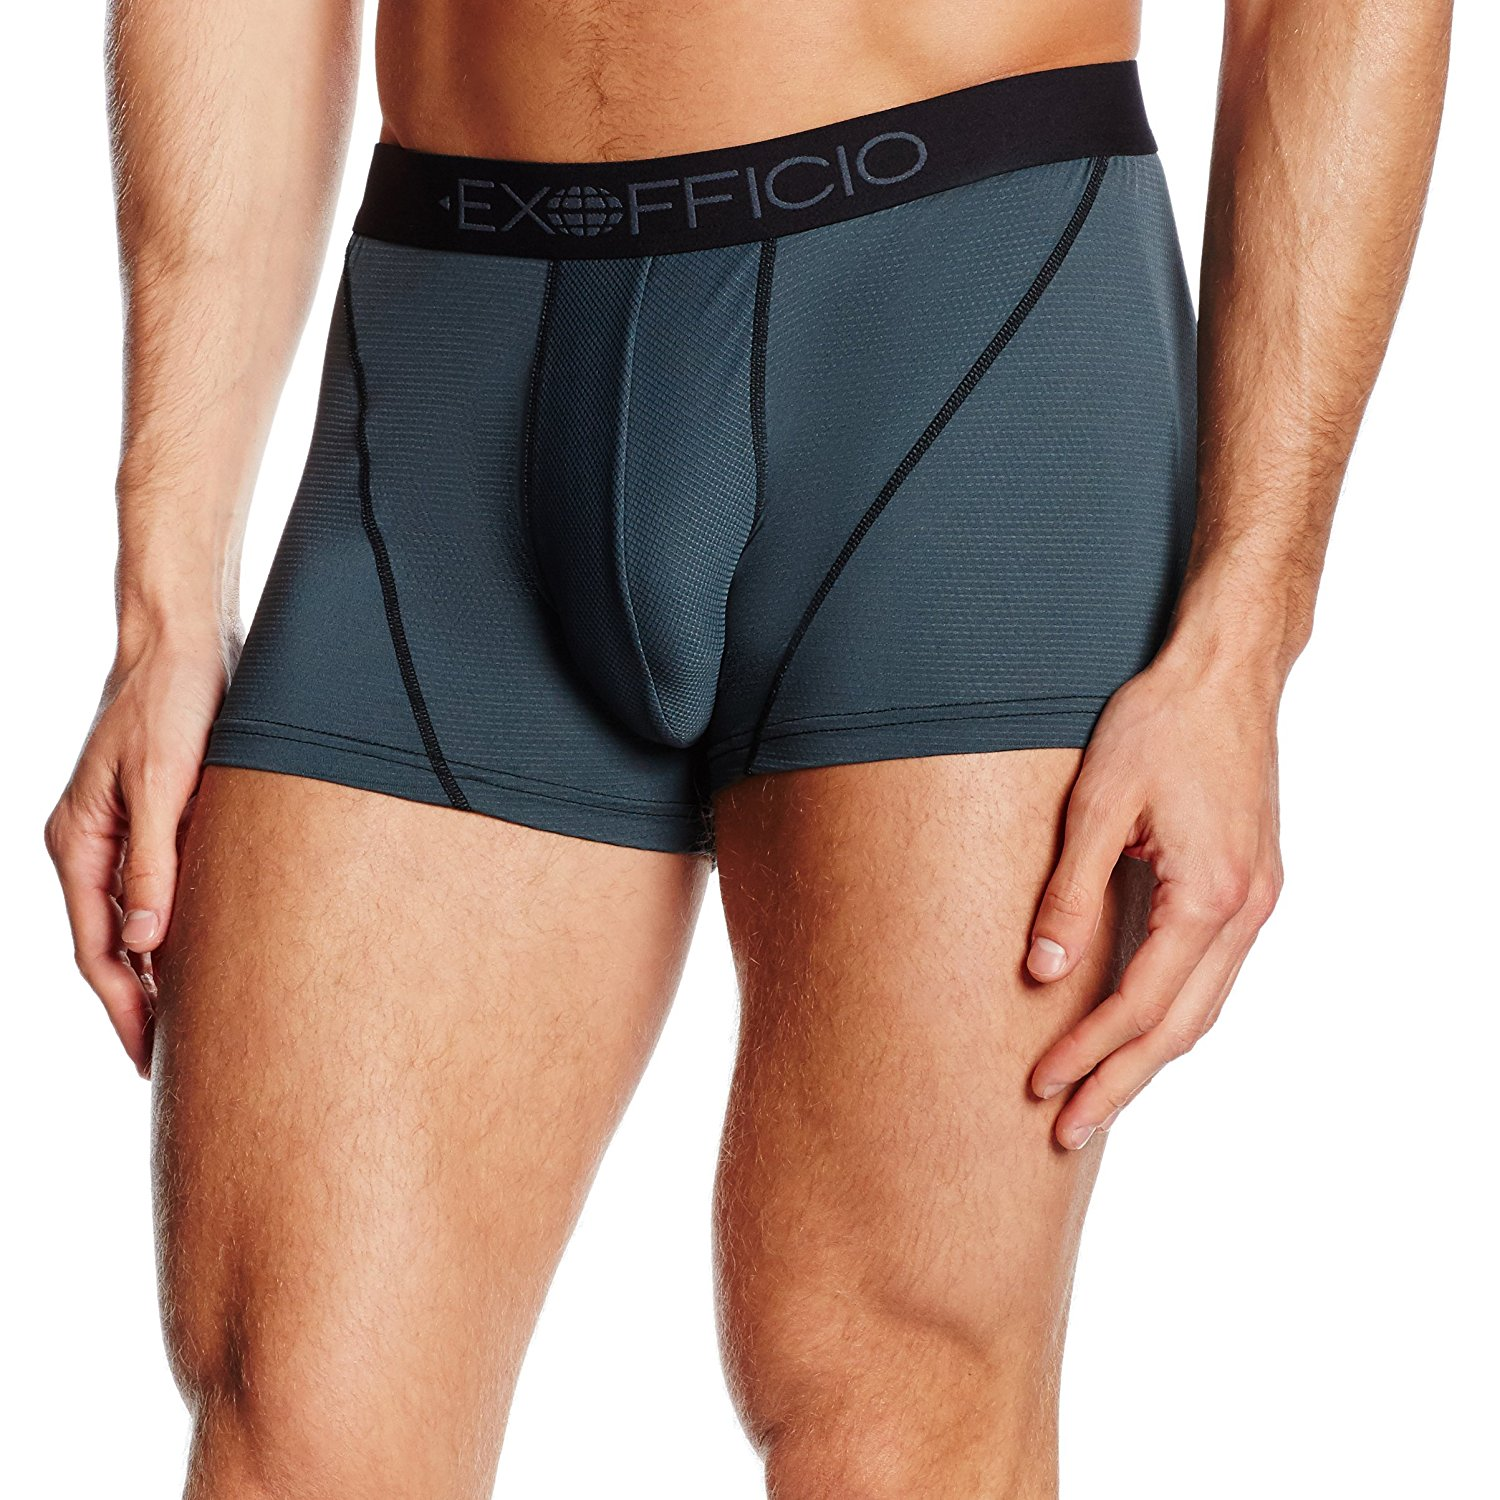 Give-N-Go Sport Mesh 3IN Boxer Brief Men's Phantom XL, Ultralight mesh is breathable and quick drying, keeping you cool by